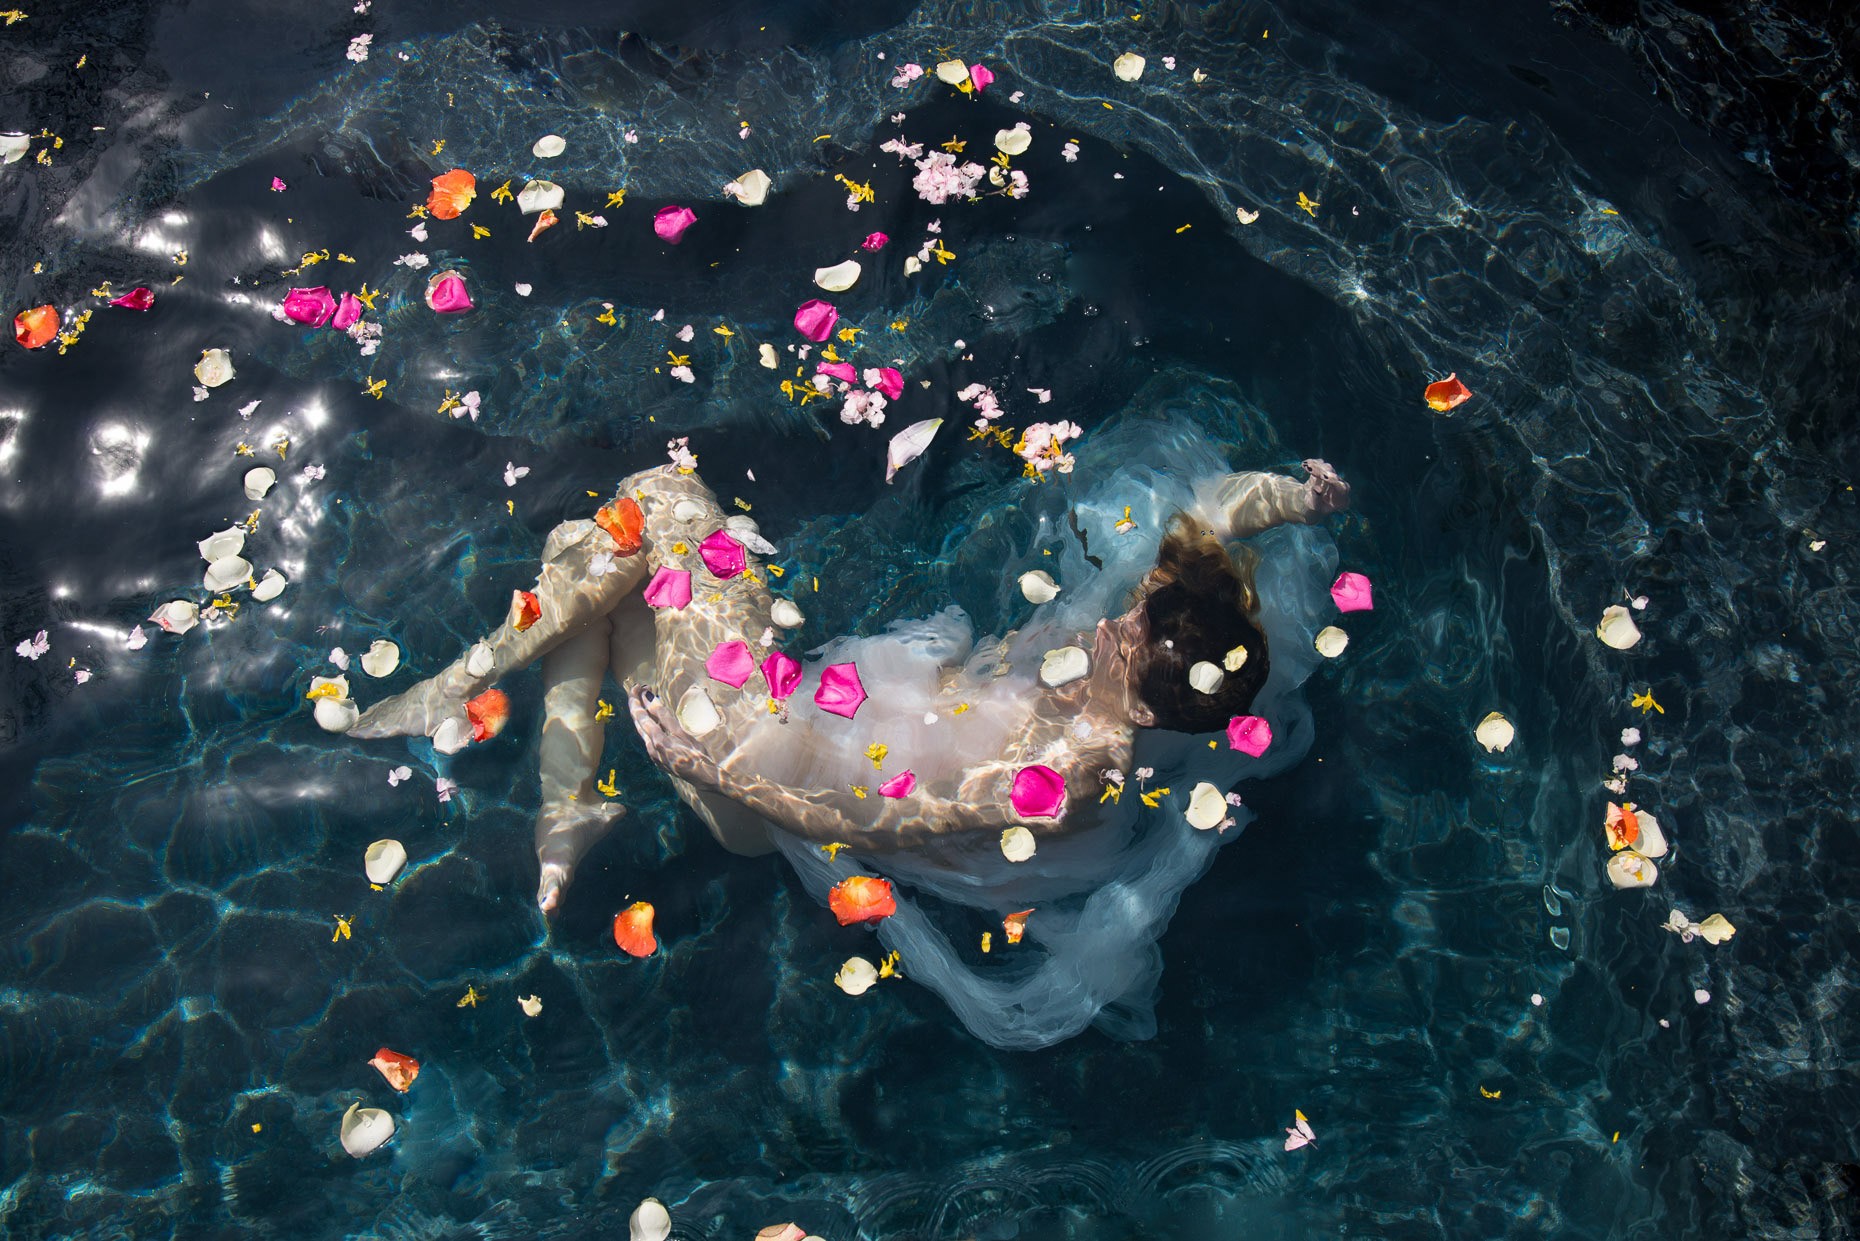 Conceptual portrait photography Nude woman submerged water flower